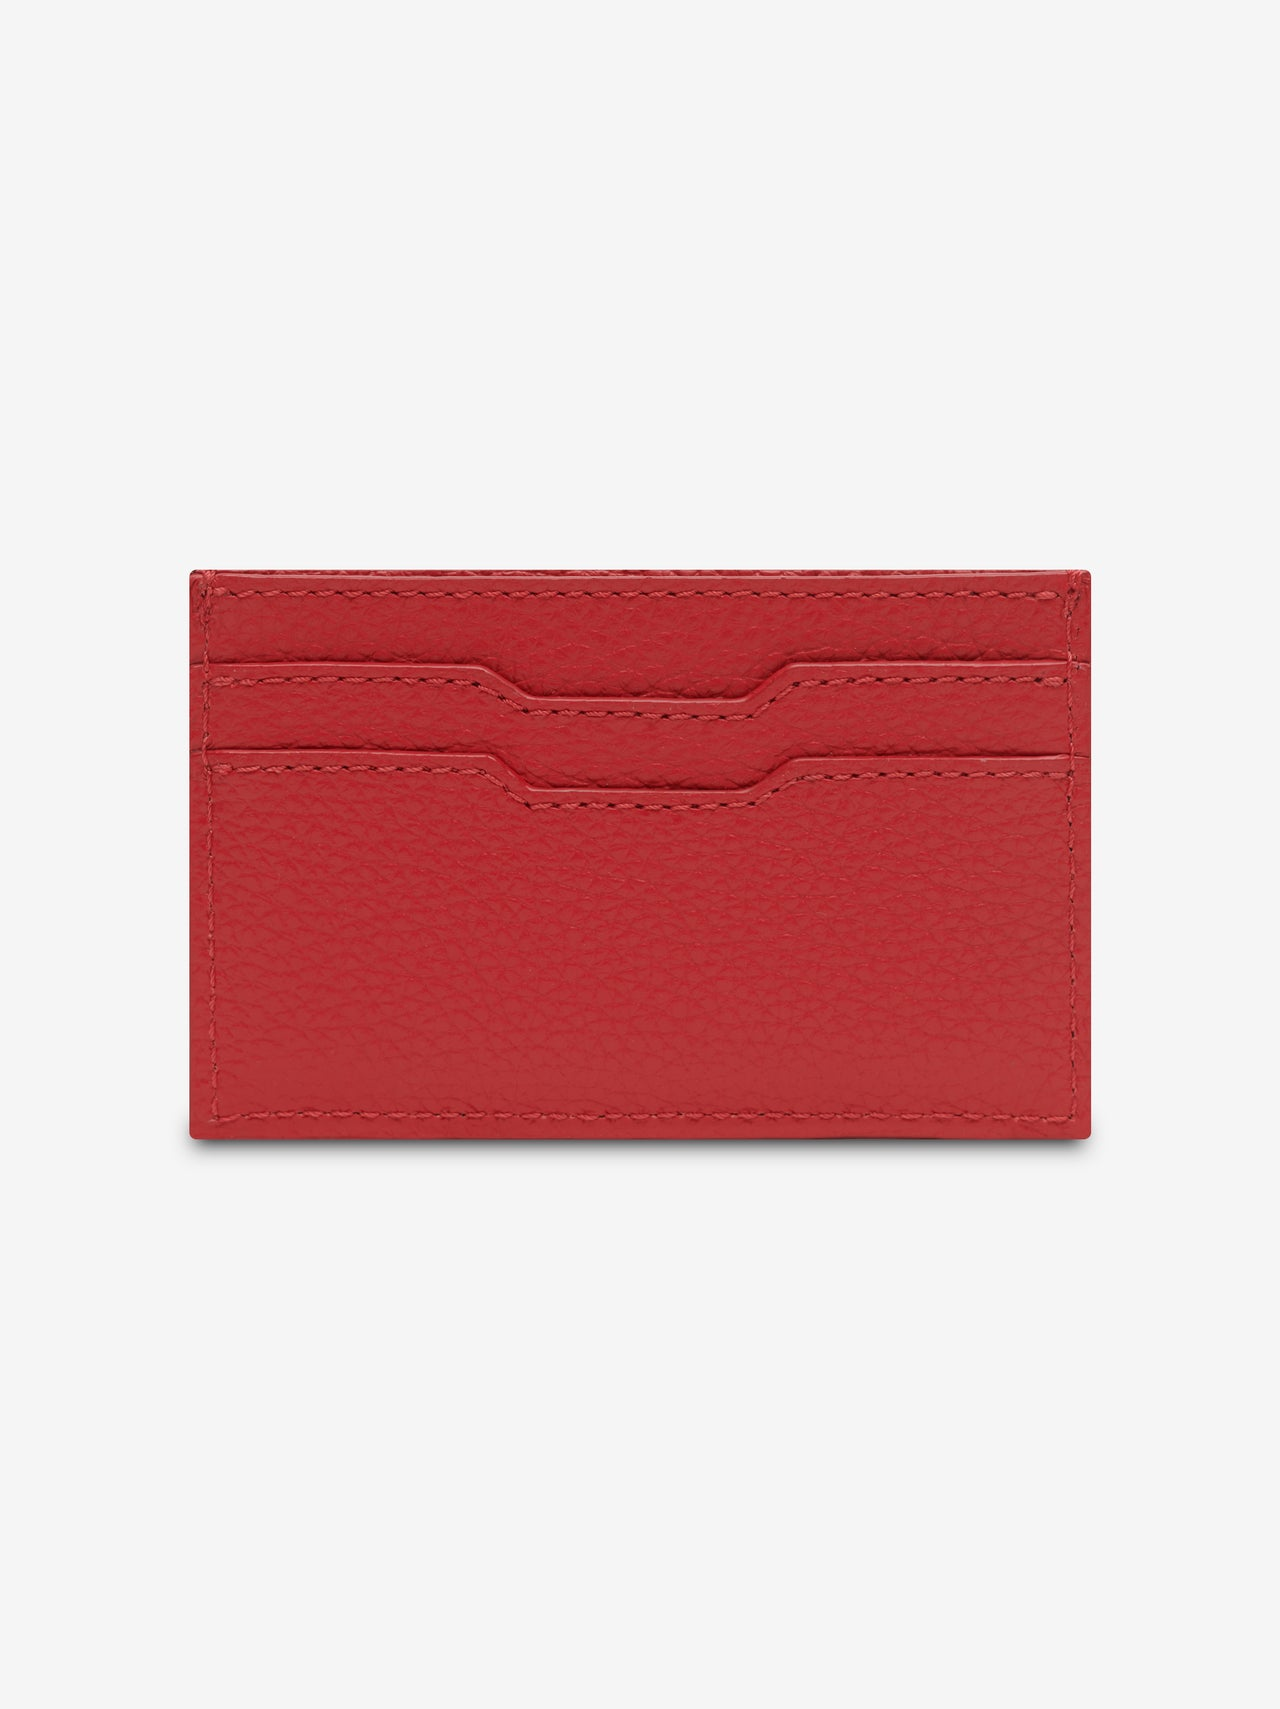 LARGE AMIRI LOGO CARD HOLDER - Red